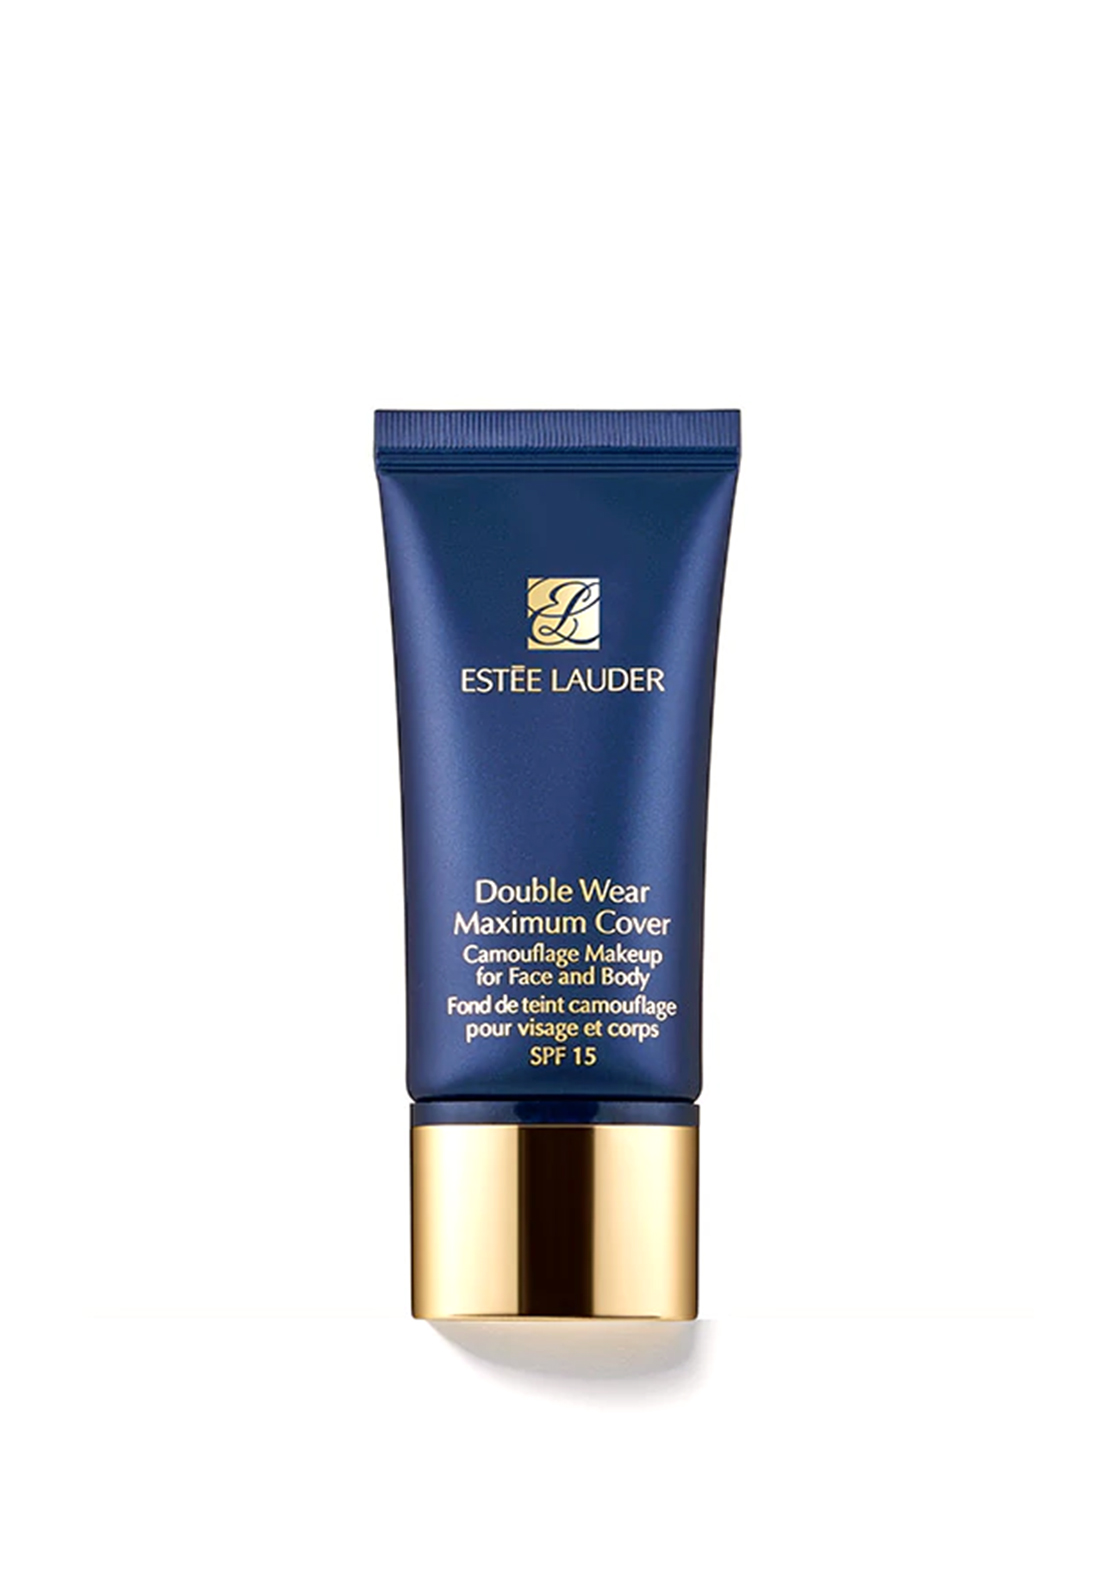 Estee Lauder Double Wear Maximum Cover Foundation, Tawny